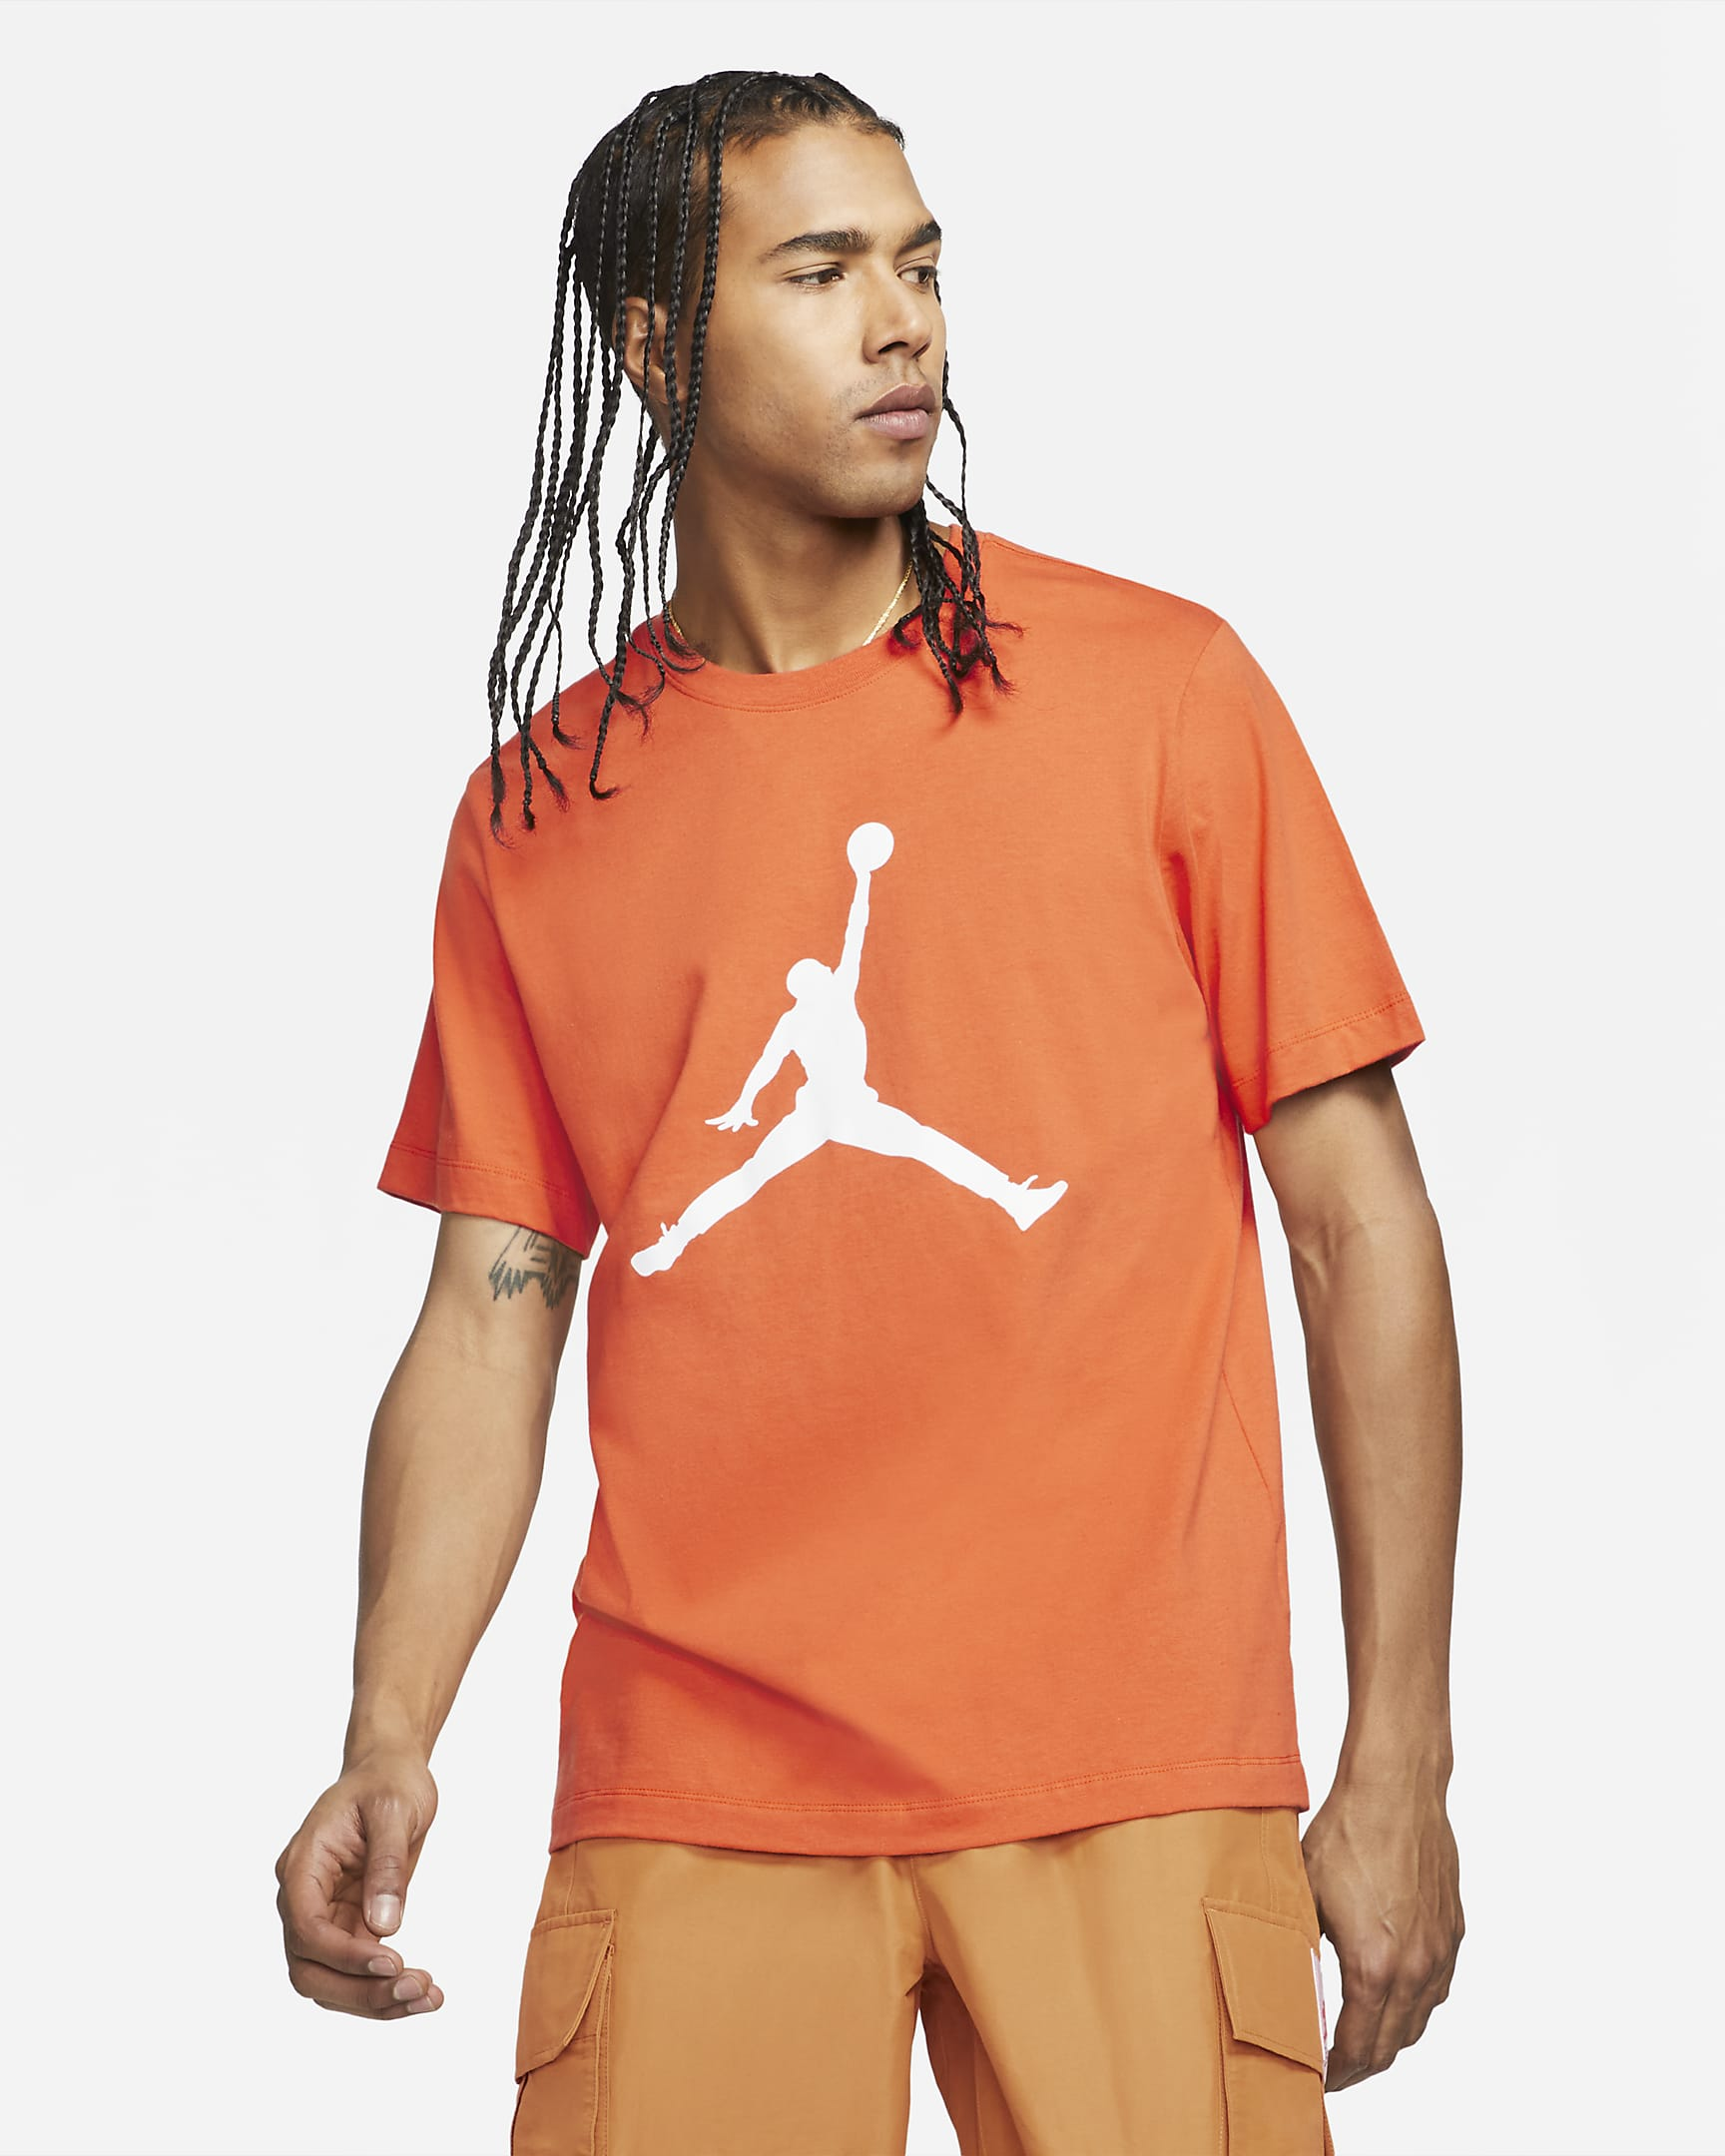 jordan-jumpman-mens-t-shirt-208CL7-1